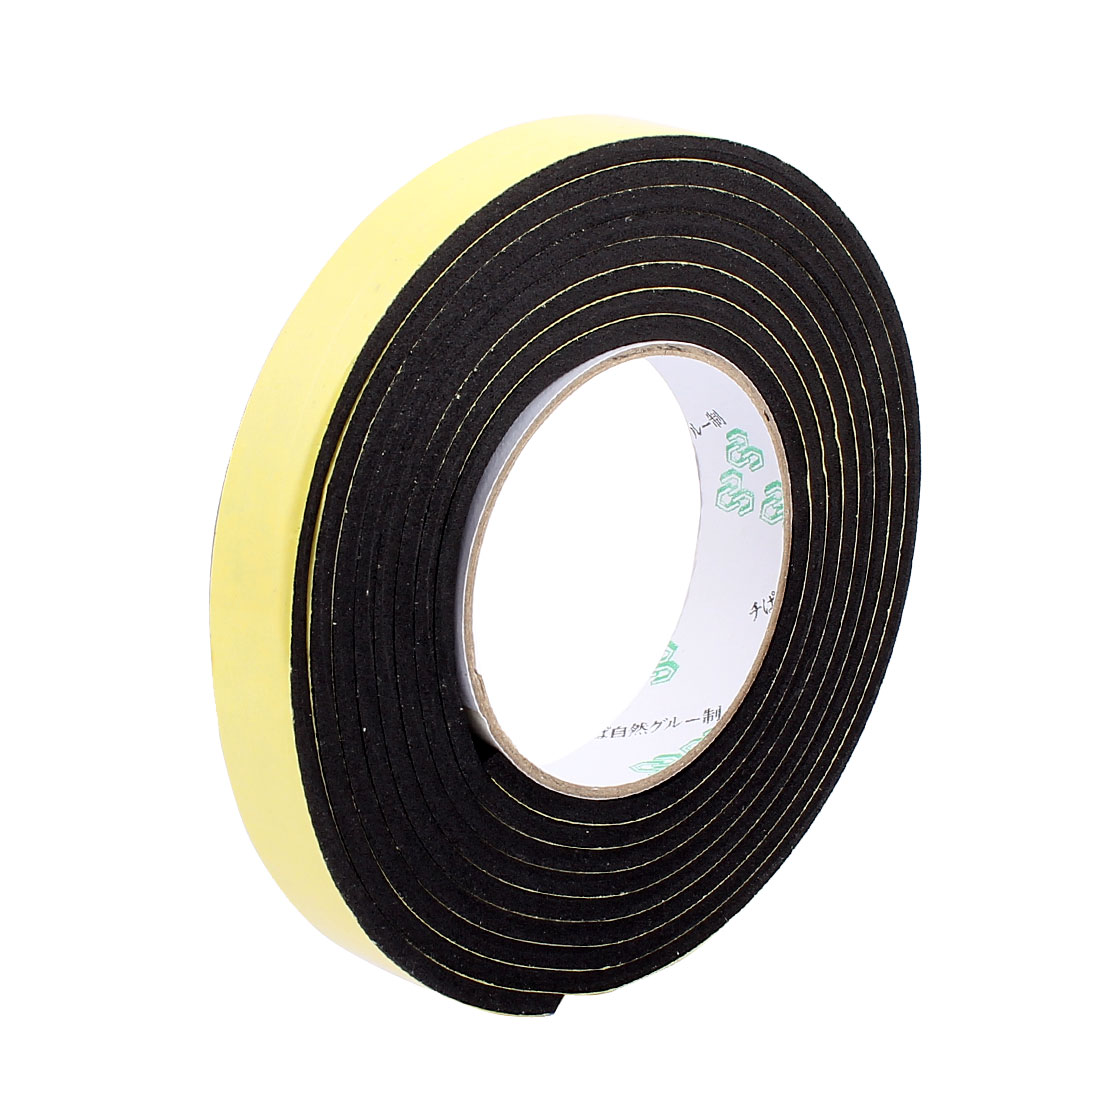 2CM Width 3 Meters Length 4MM Thick Single Sided Sealing Shockproof Sponge Tape